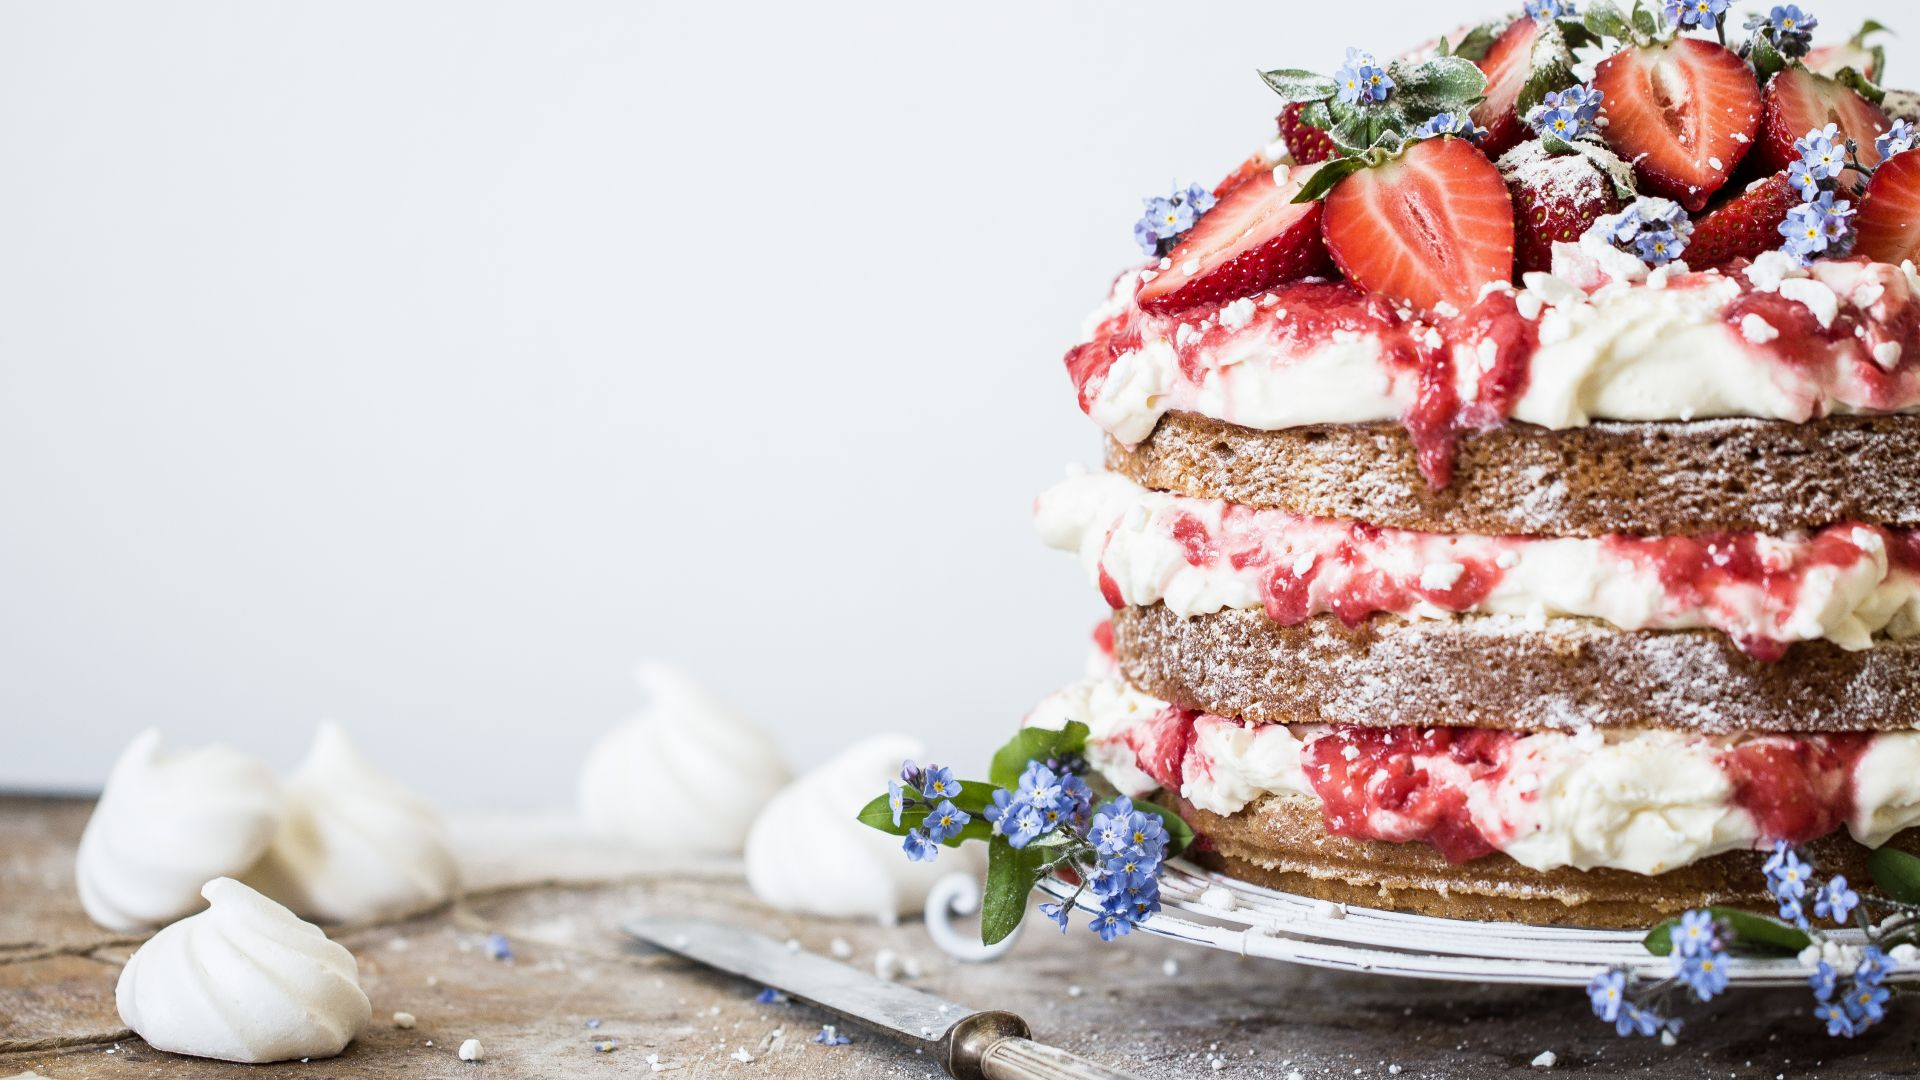 birthday cake, receipt, strawberry, 5k (horizontal)